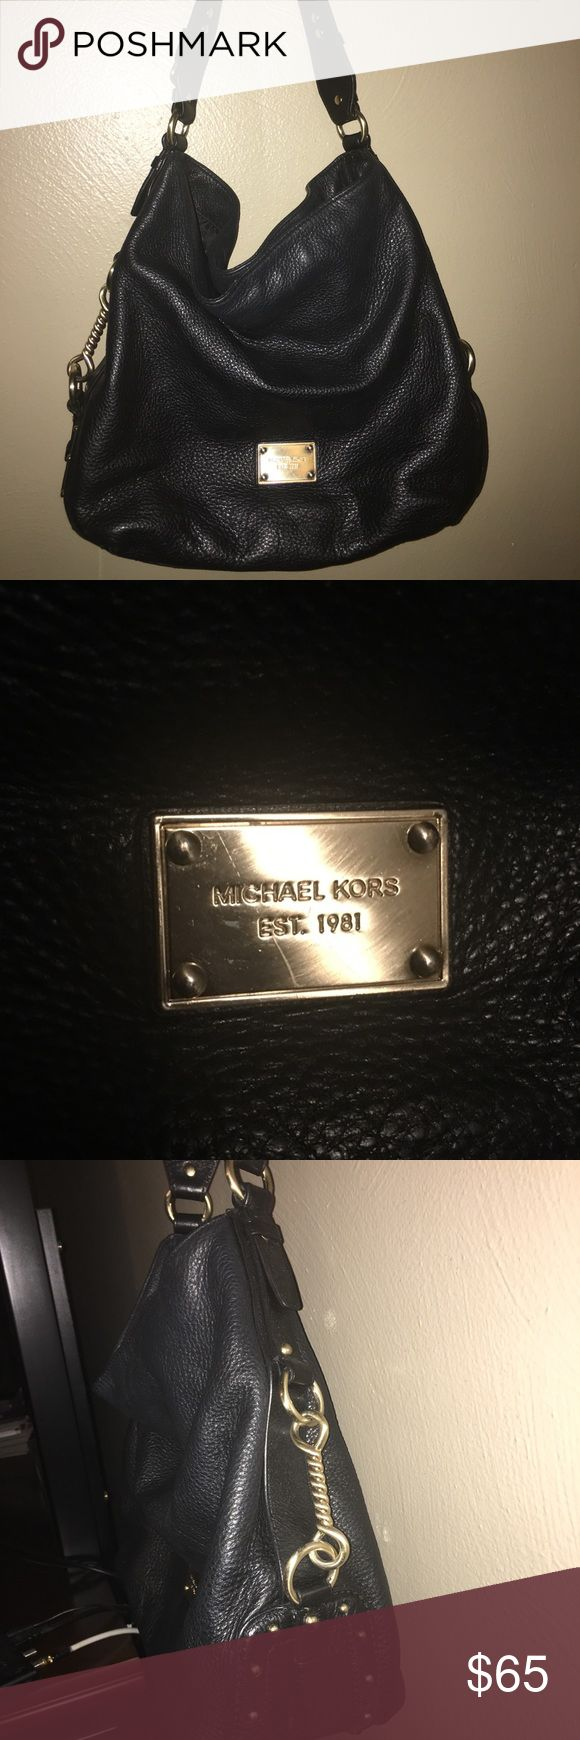 Michael Kors purse (good condition) Black MK purse. Gold chains on side. Small/medium size. Good condition. Michael Kors Bags